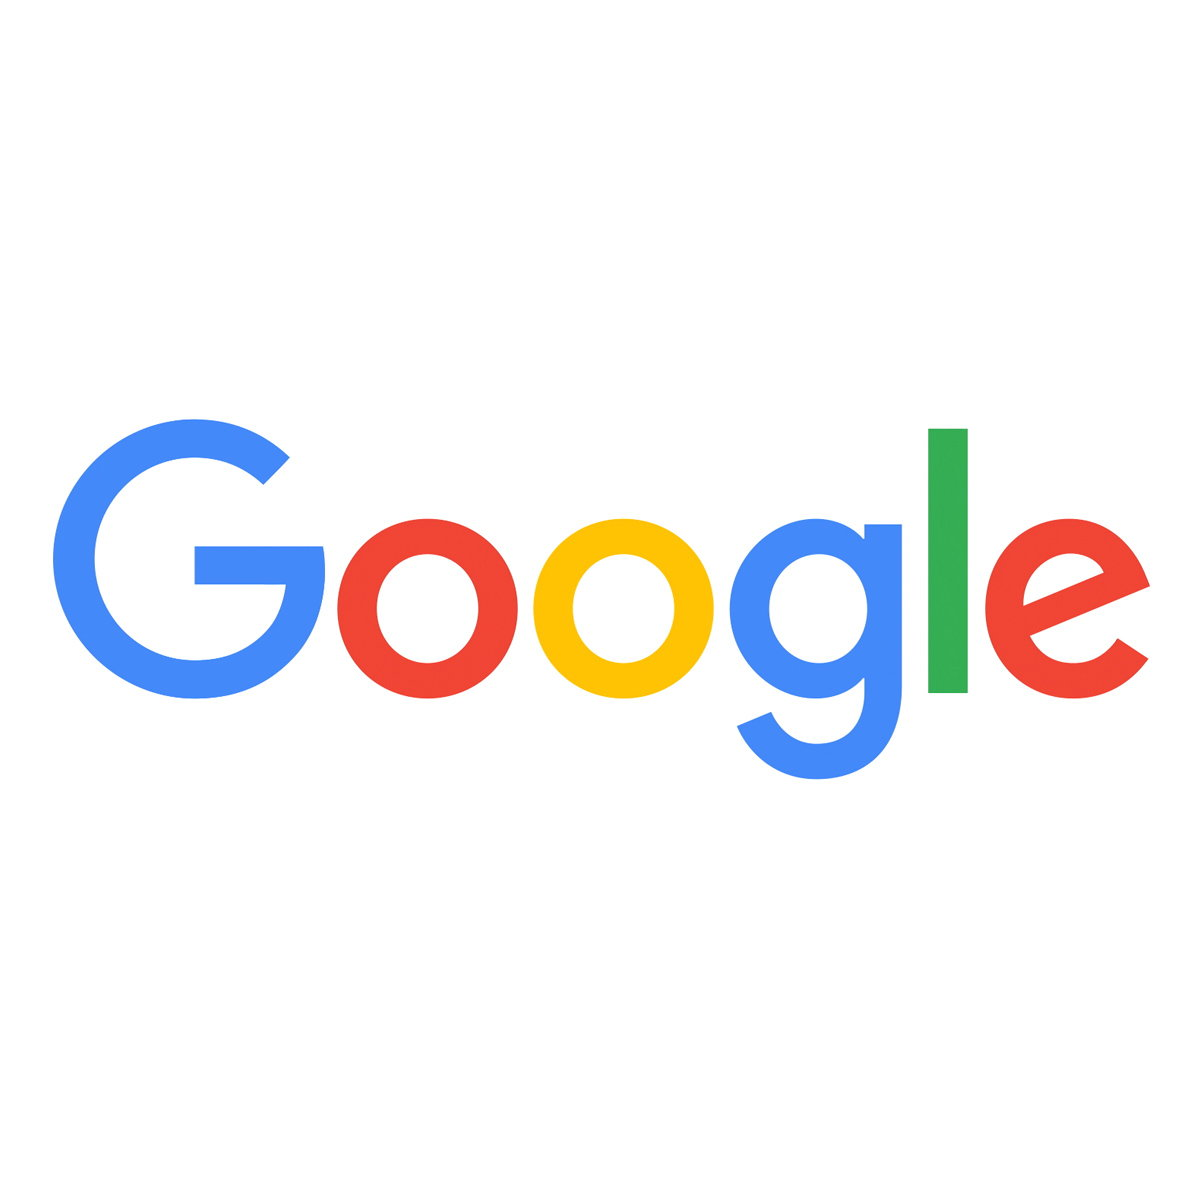 AIGA Names Google as Corporate Leader for Raising the Bar of Design Excellence